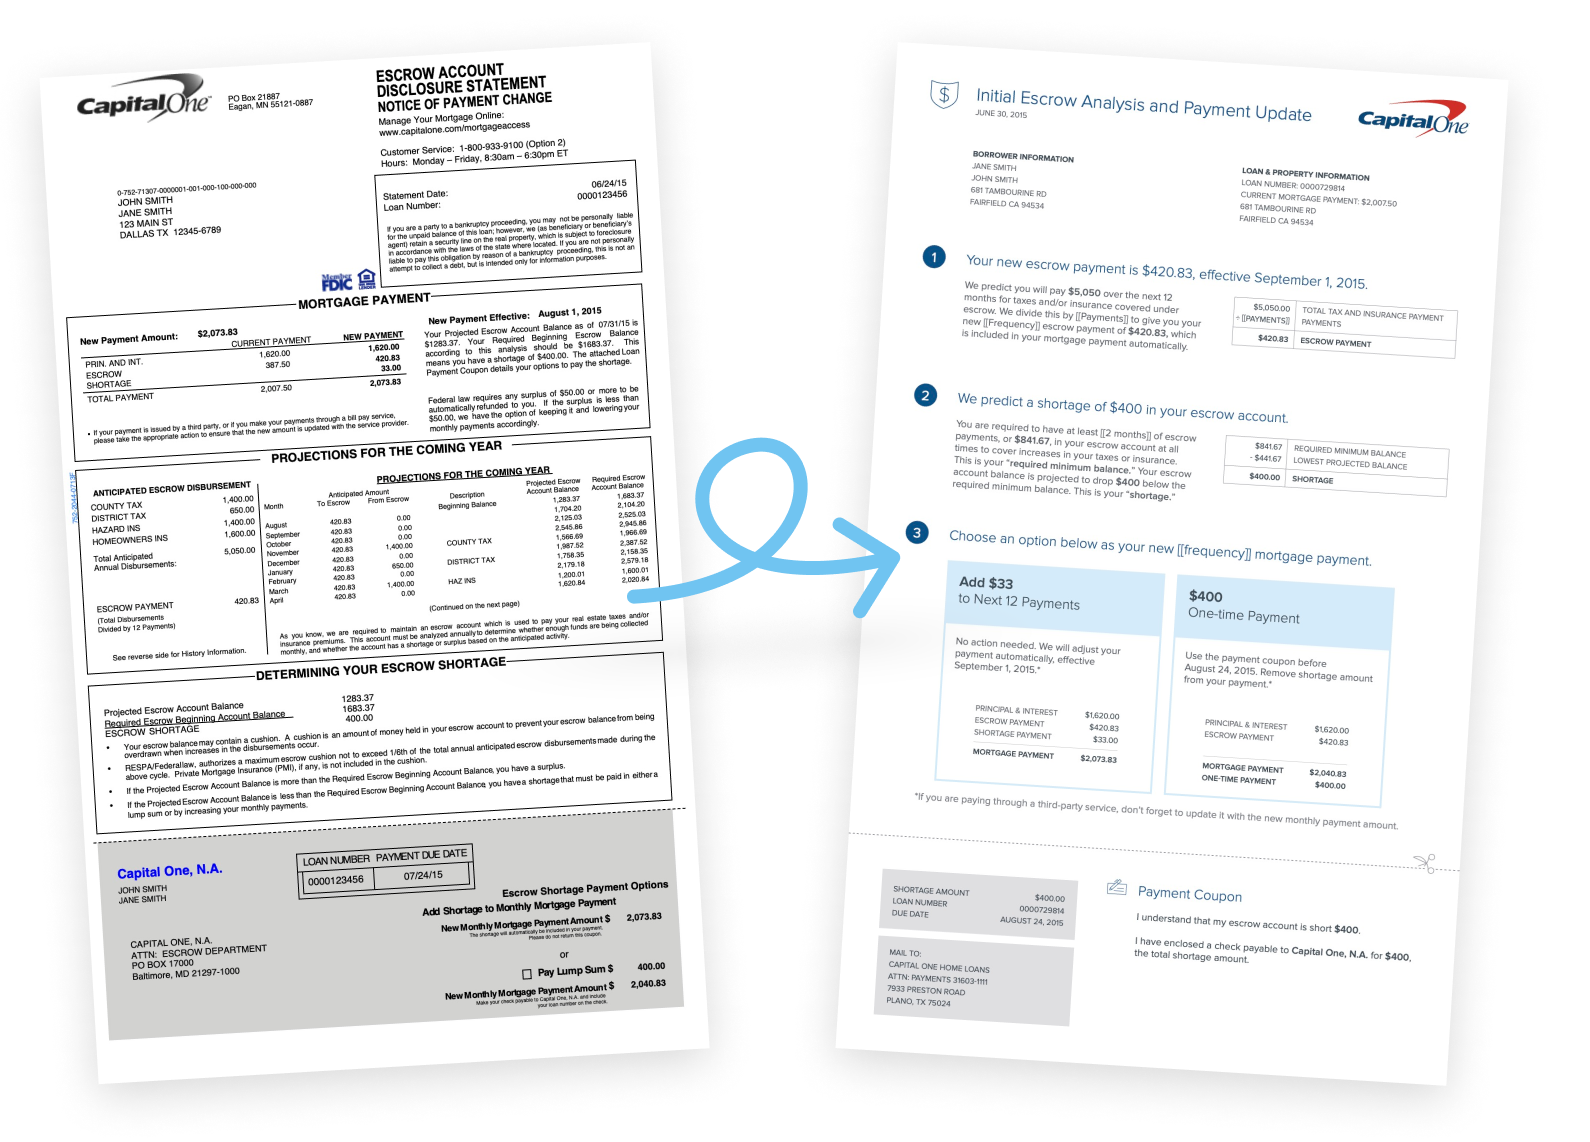 Image showing before and after the statement redesign.